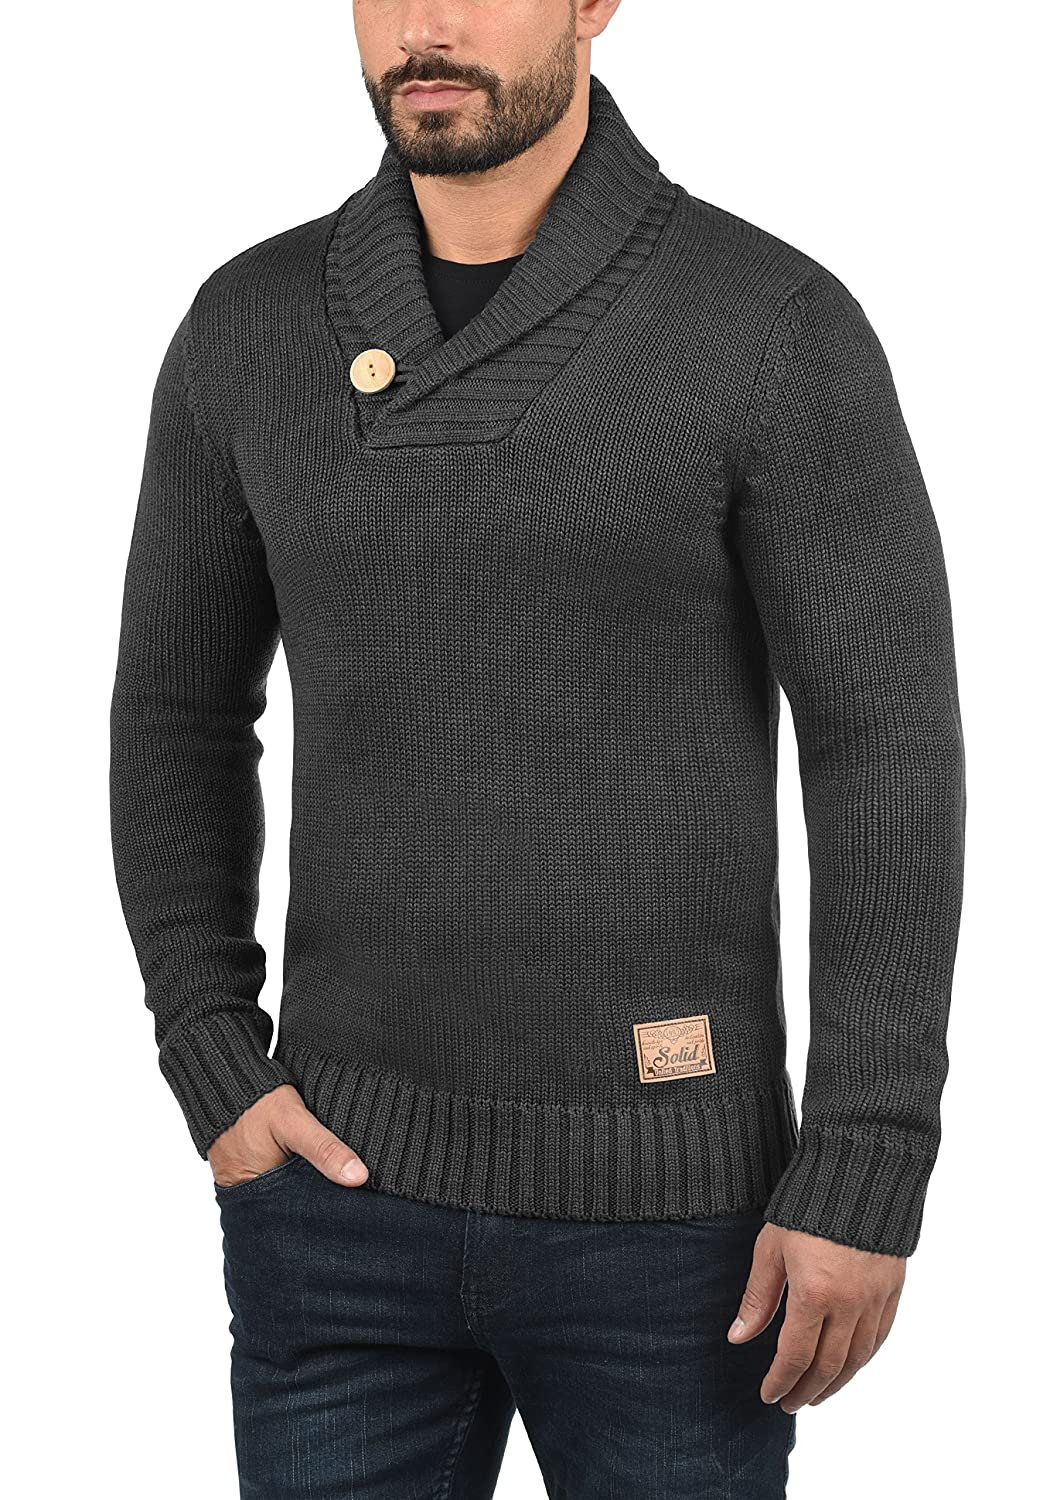 Solid Paddy Pull En Grosse Maille Pull-Over Tricot Pour Homme Avec Col Ch/âle